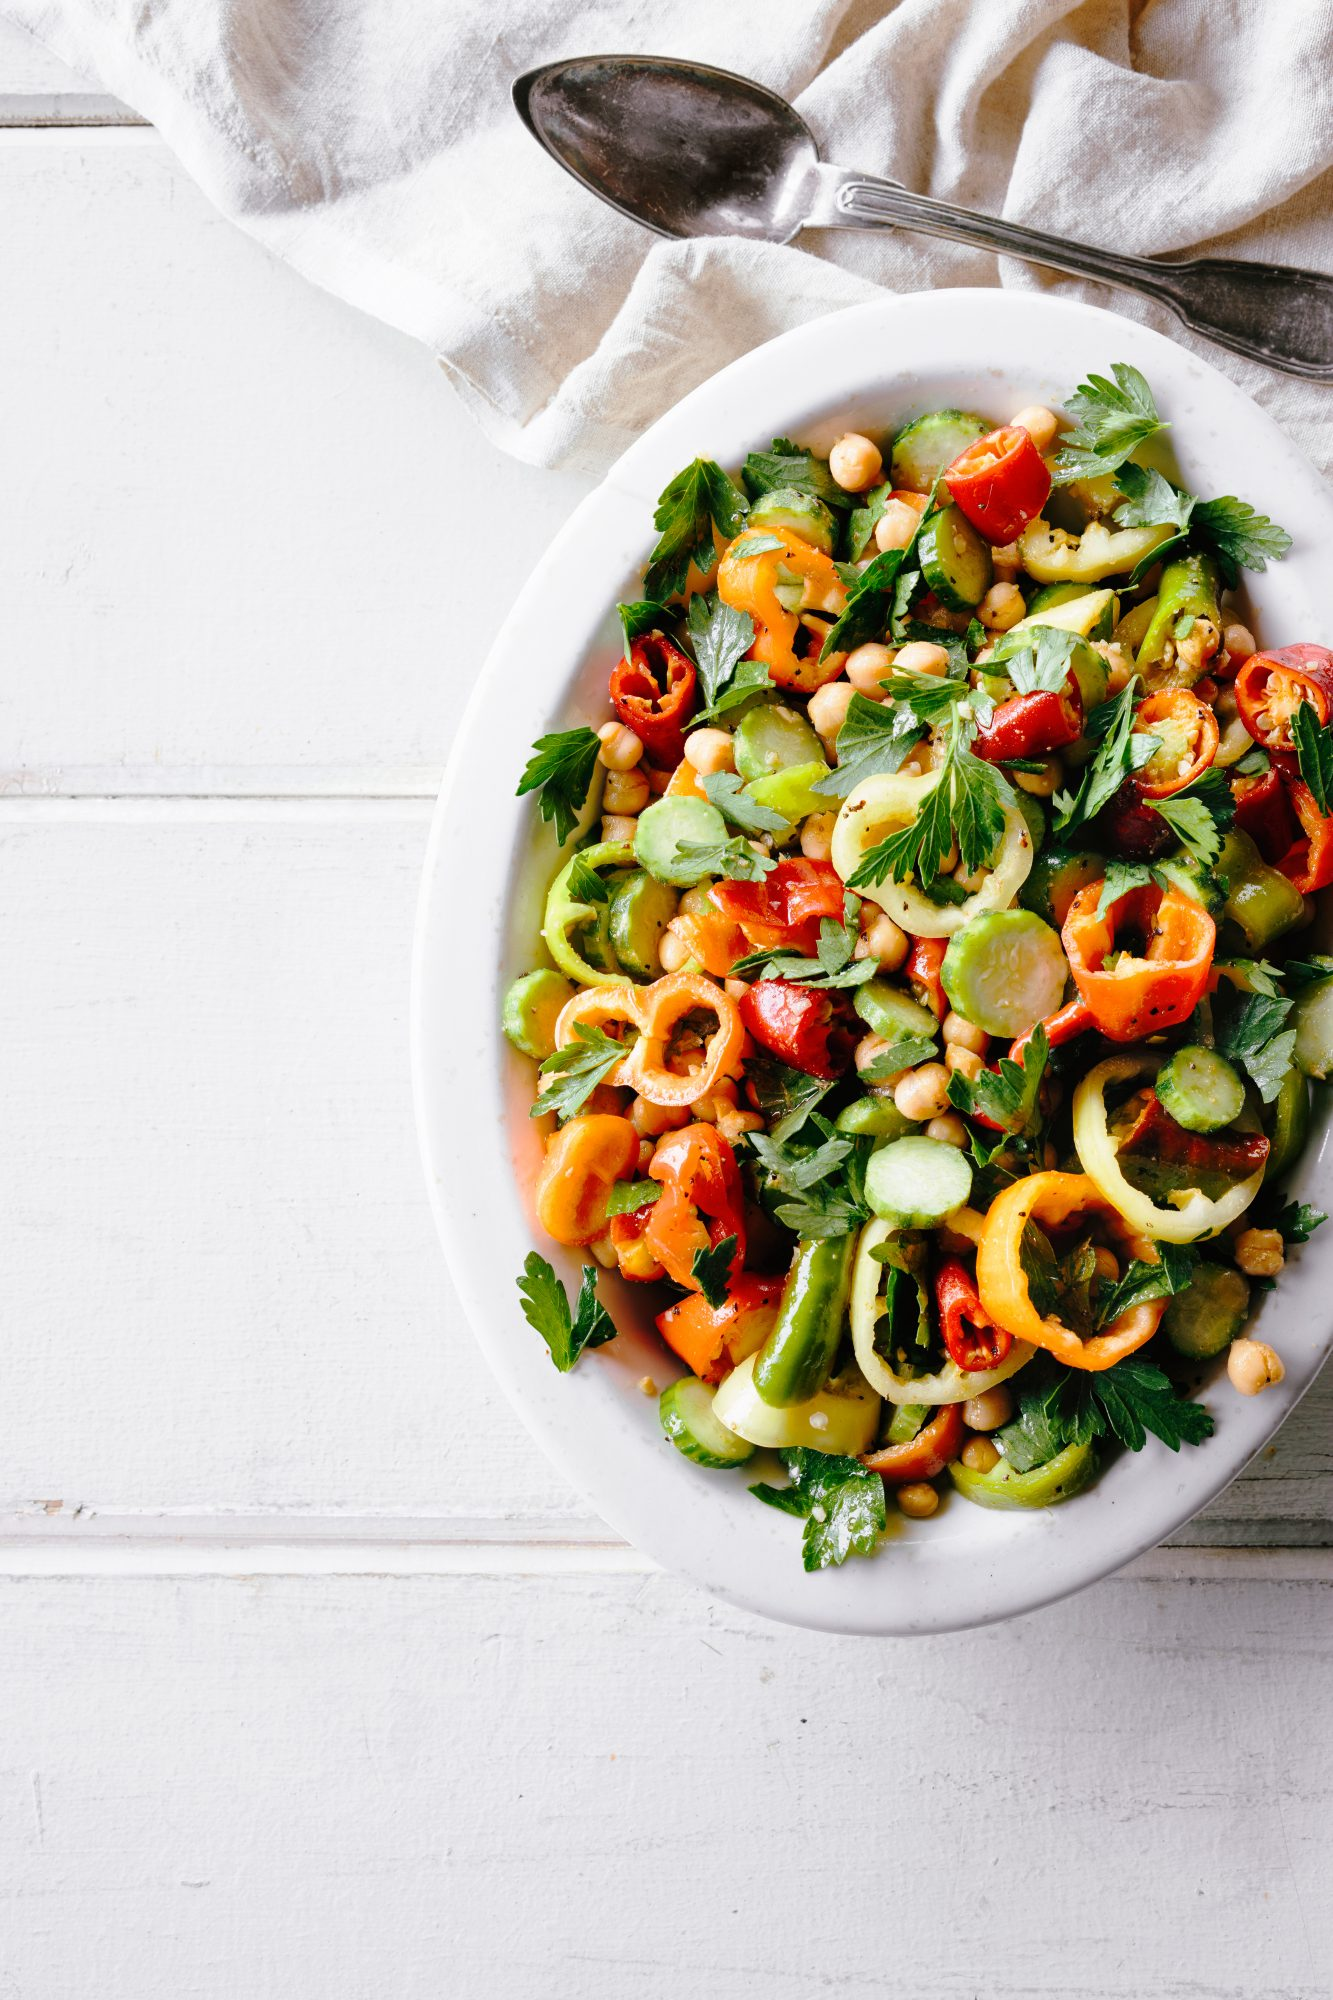 su-Pepper, Cucumber, and Chickpea Saladsu-Pepper, Cucumber, and Chickpea Salad